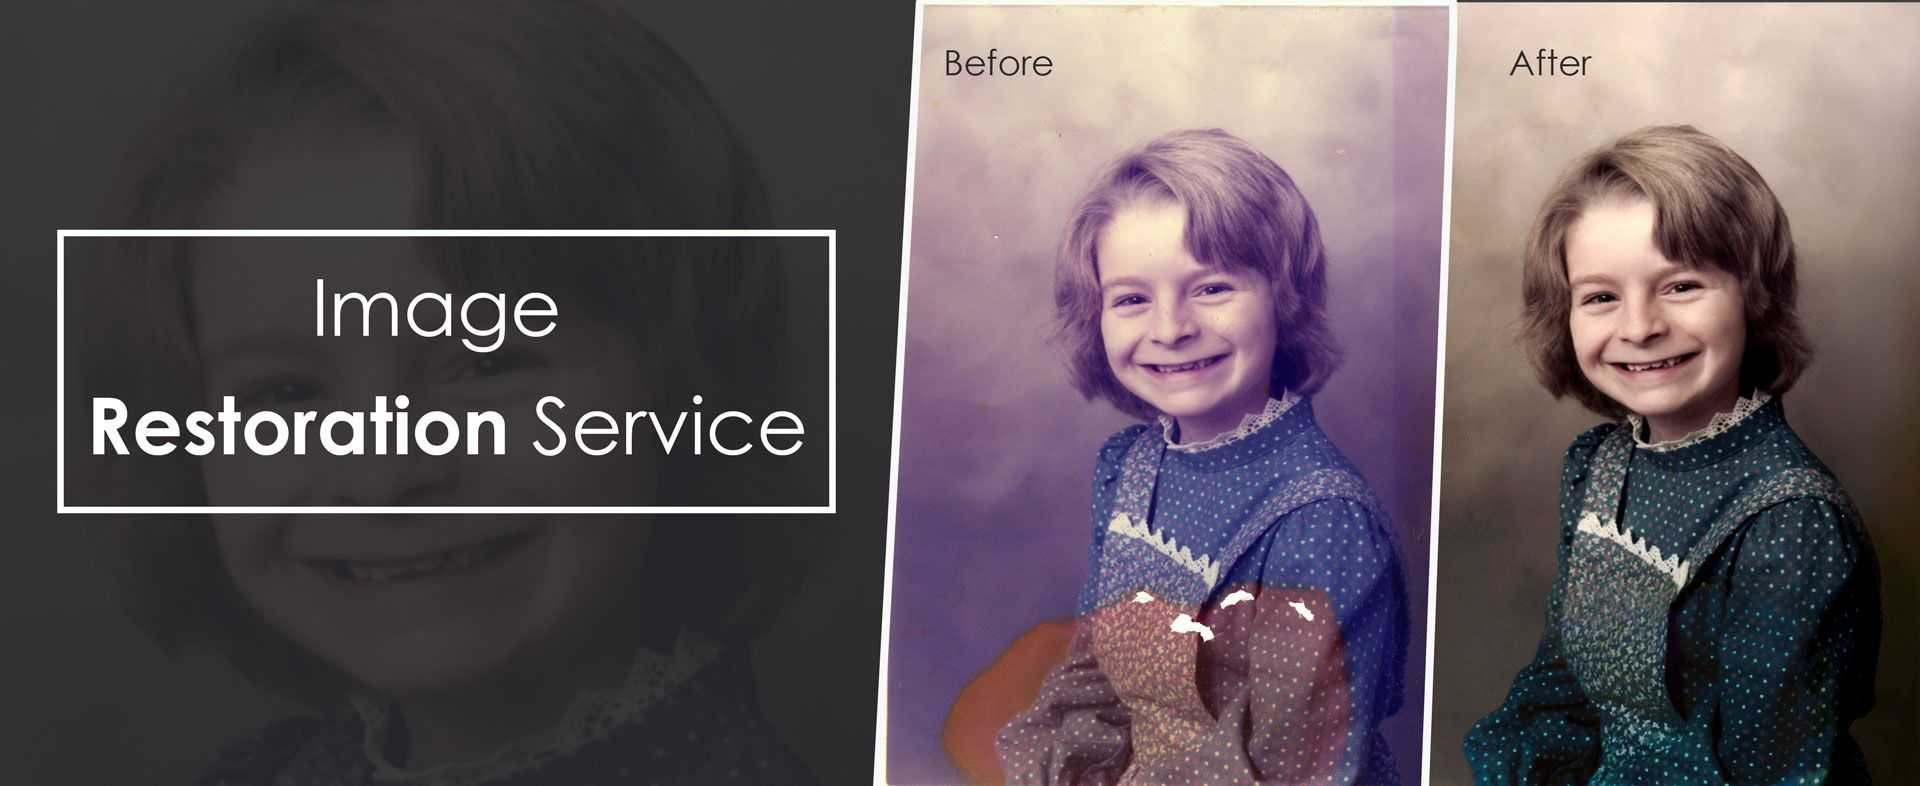 Get Your Images Awe-Inspiringly Restored With ITS